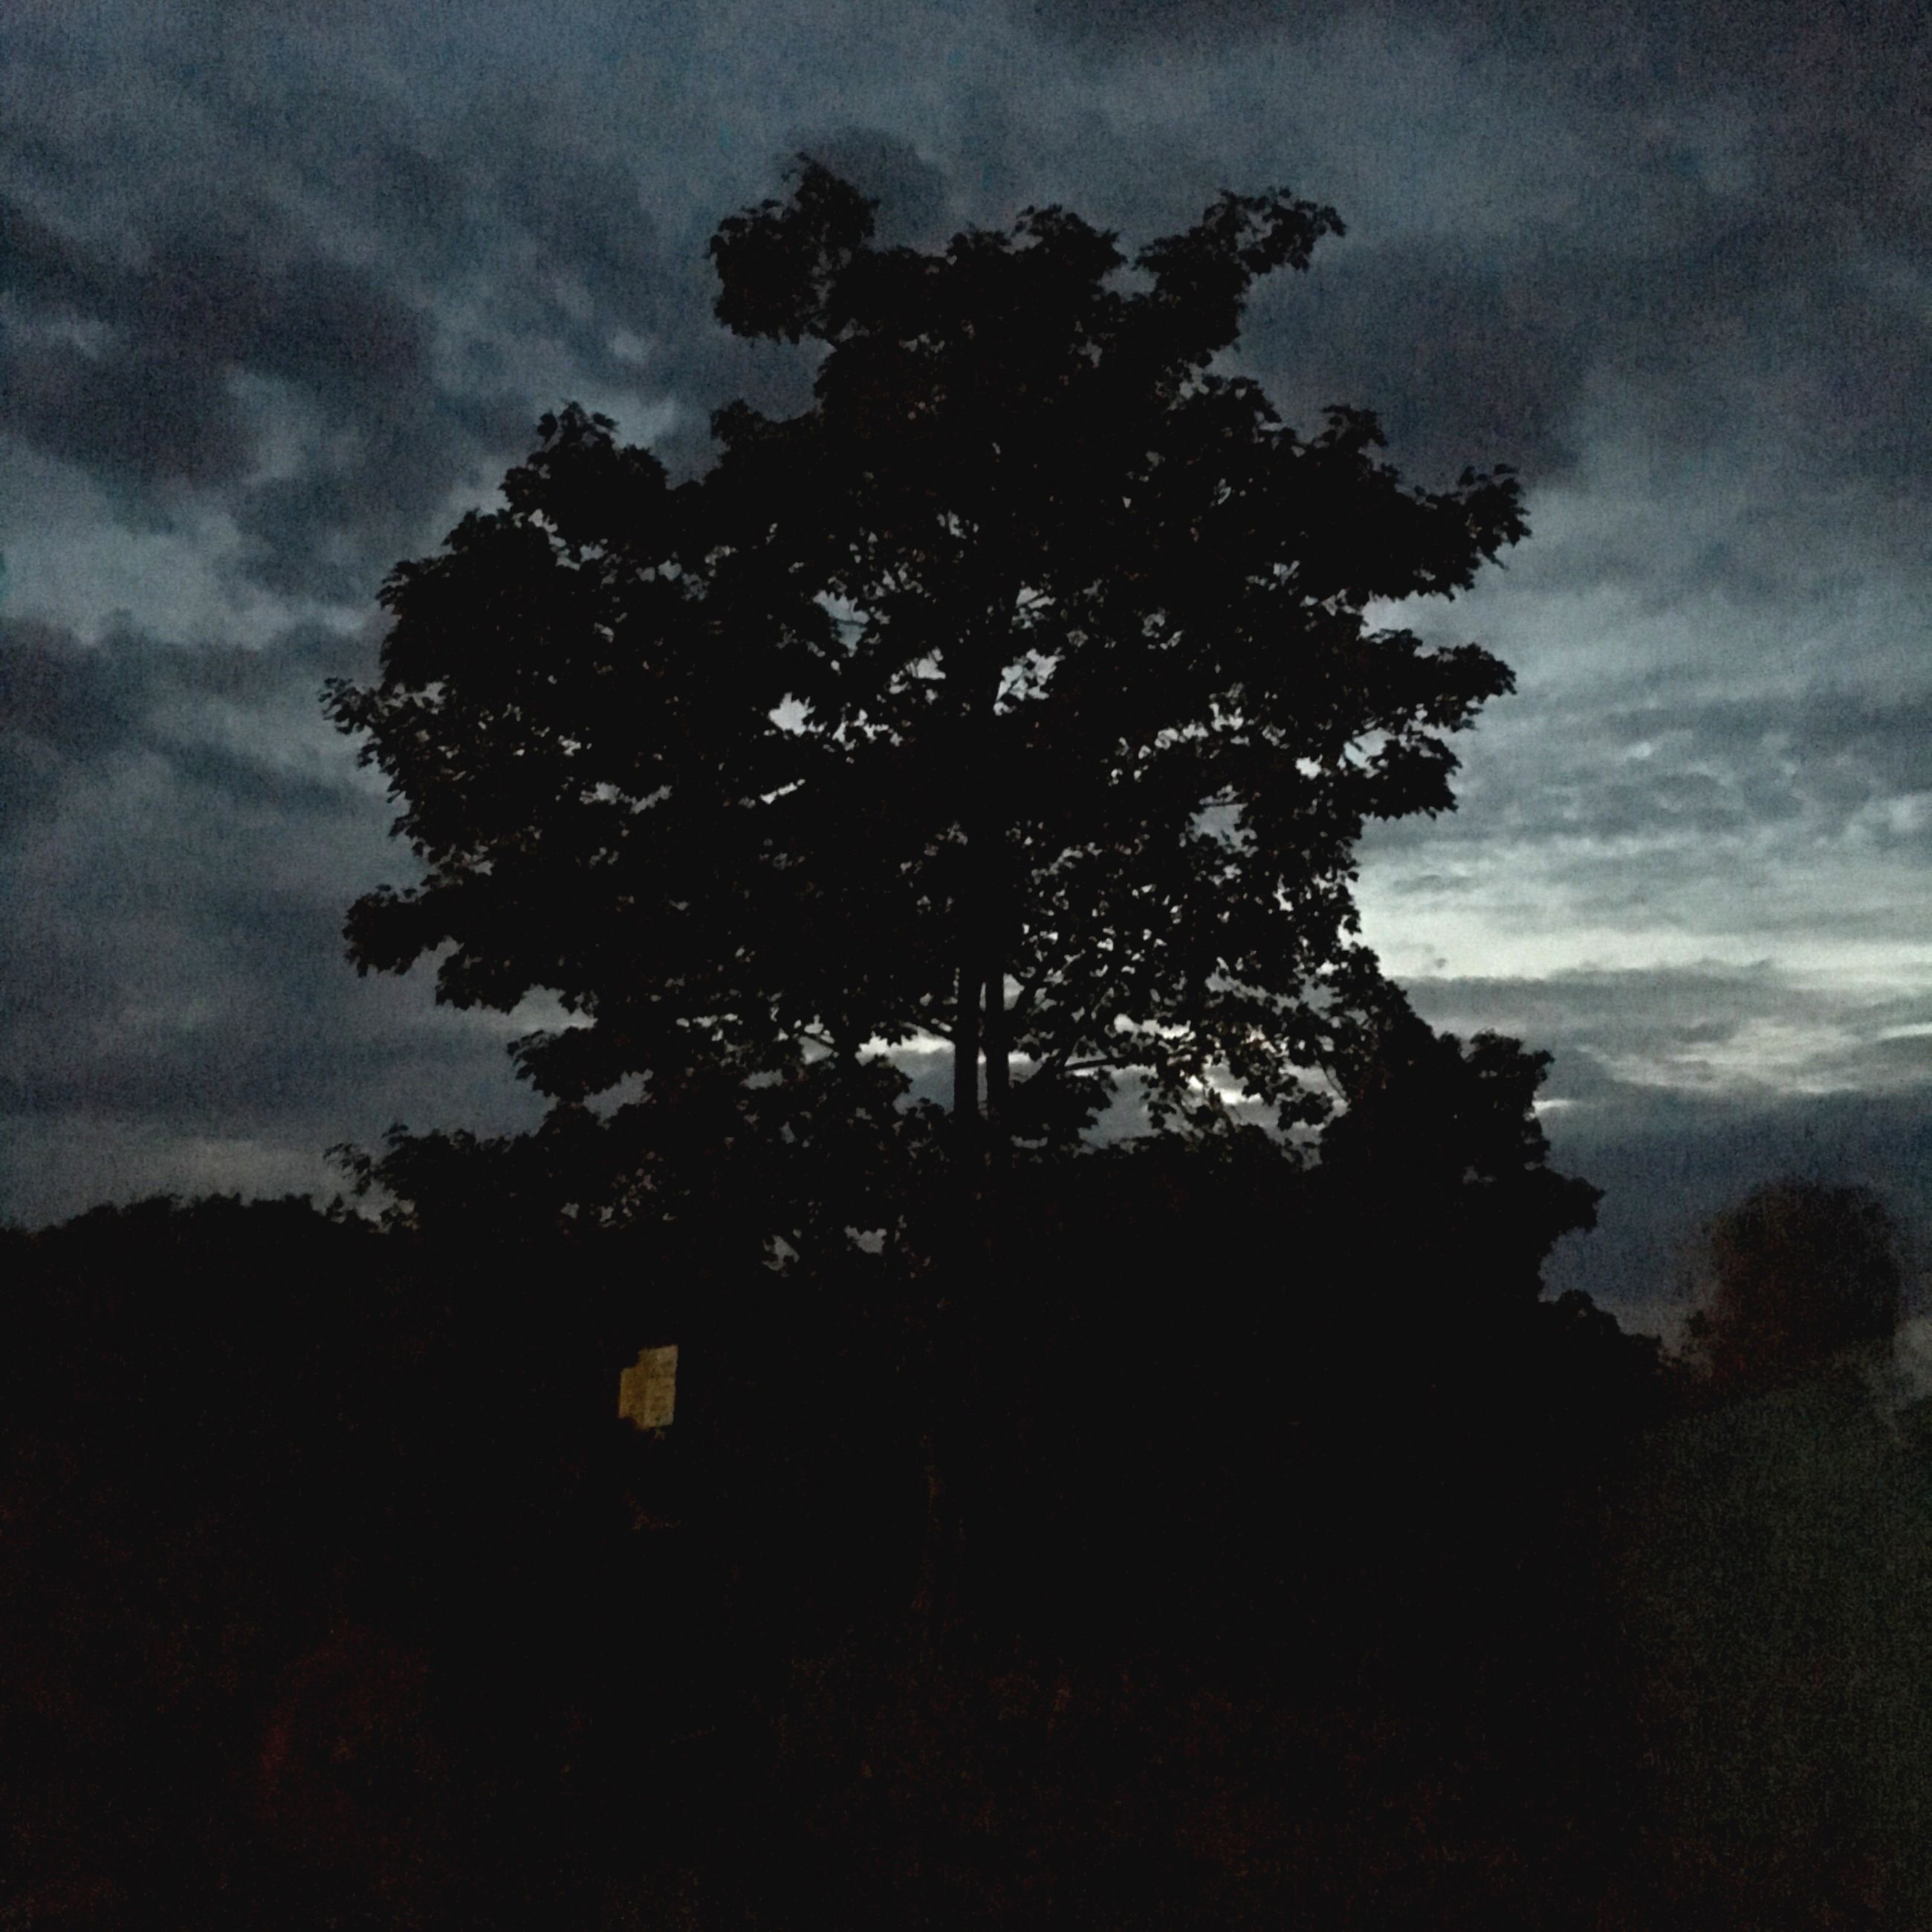 tree, silhouette, growth, sky, tranquility, tranquil scene, nature, low angle view, scenics, beauty in nature, cloud - sky, branch, mountain, tourism, non-urban scene, single tree, tall - high, outdoors, majestic, outline, no people, remote, solitude, cloudy